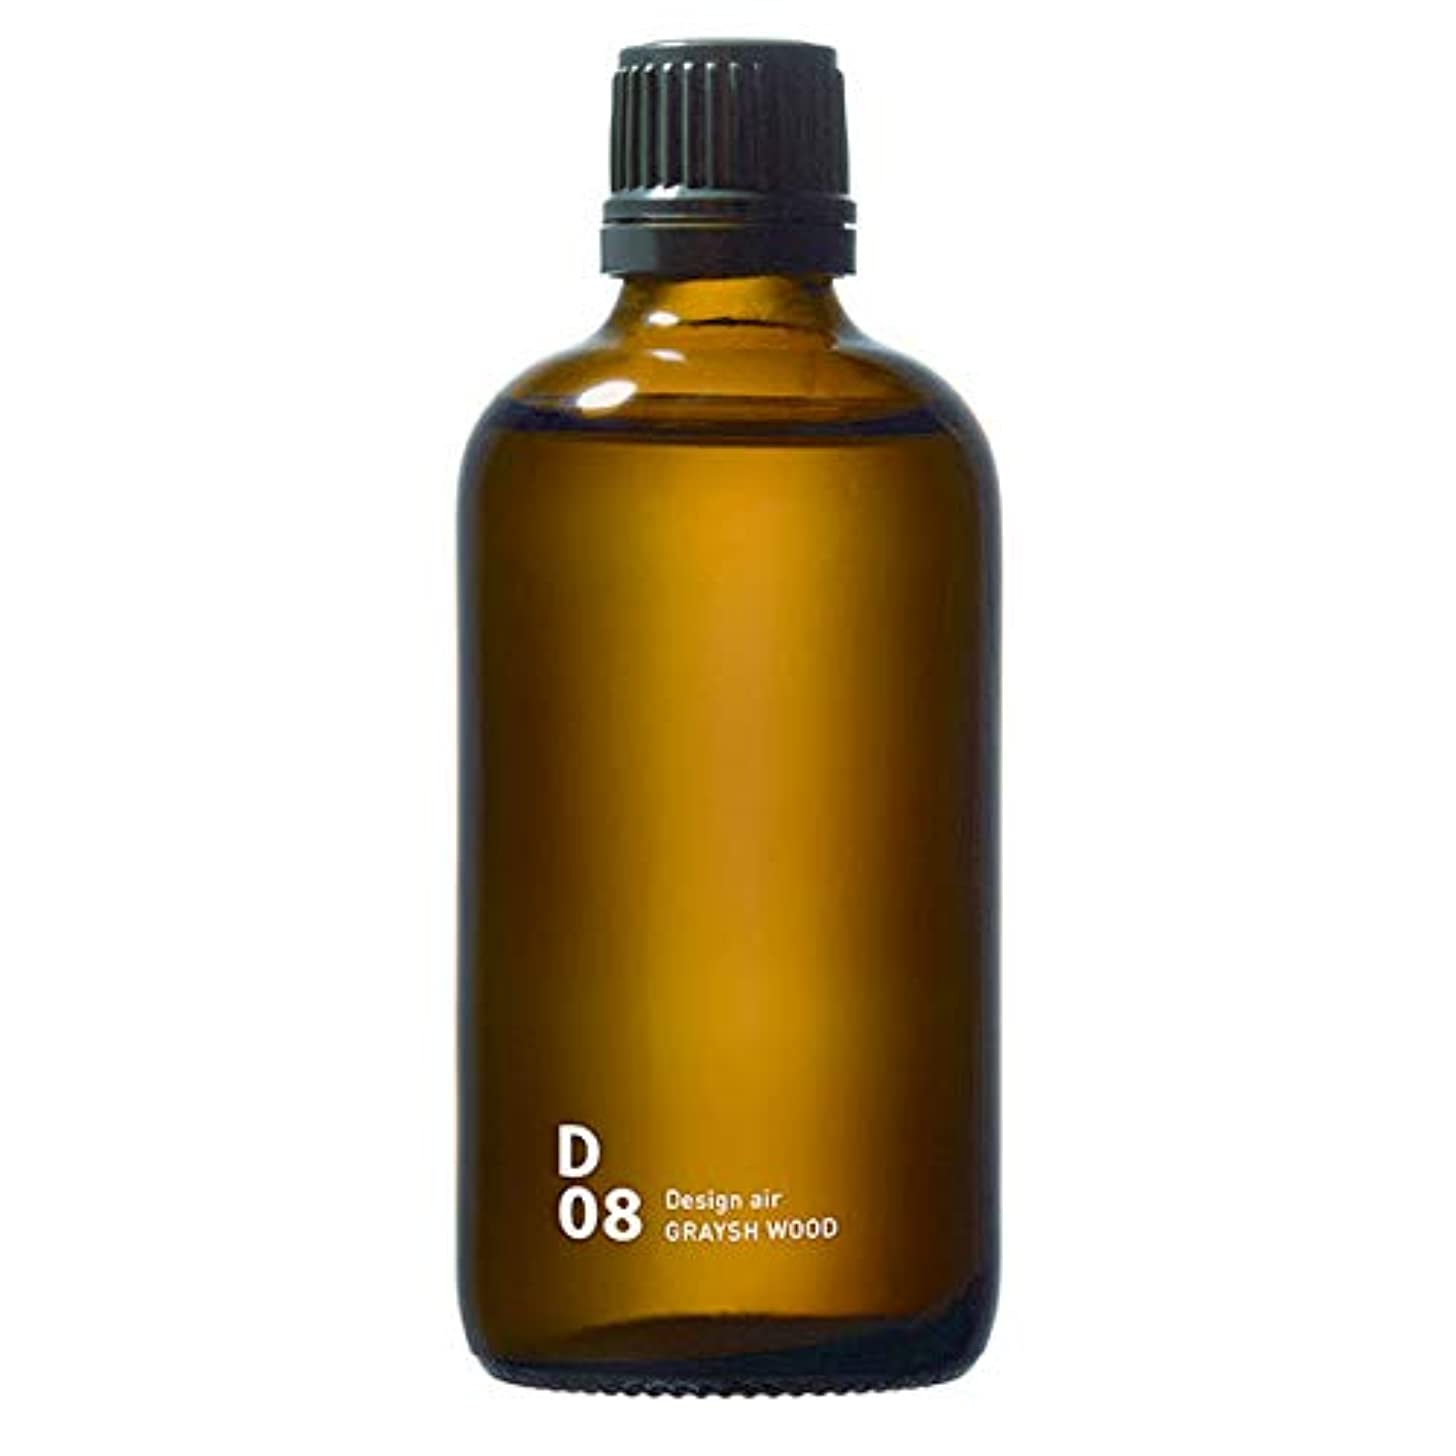 サーバオーブン女の子D08 GRAYISH WOOD piezo aroma oil 100ml